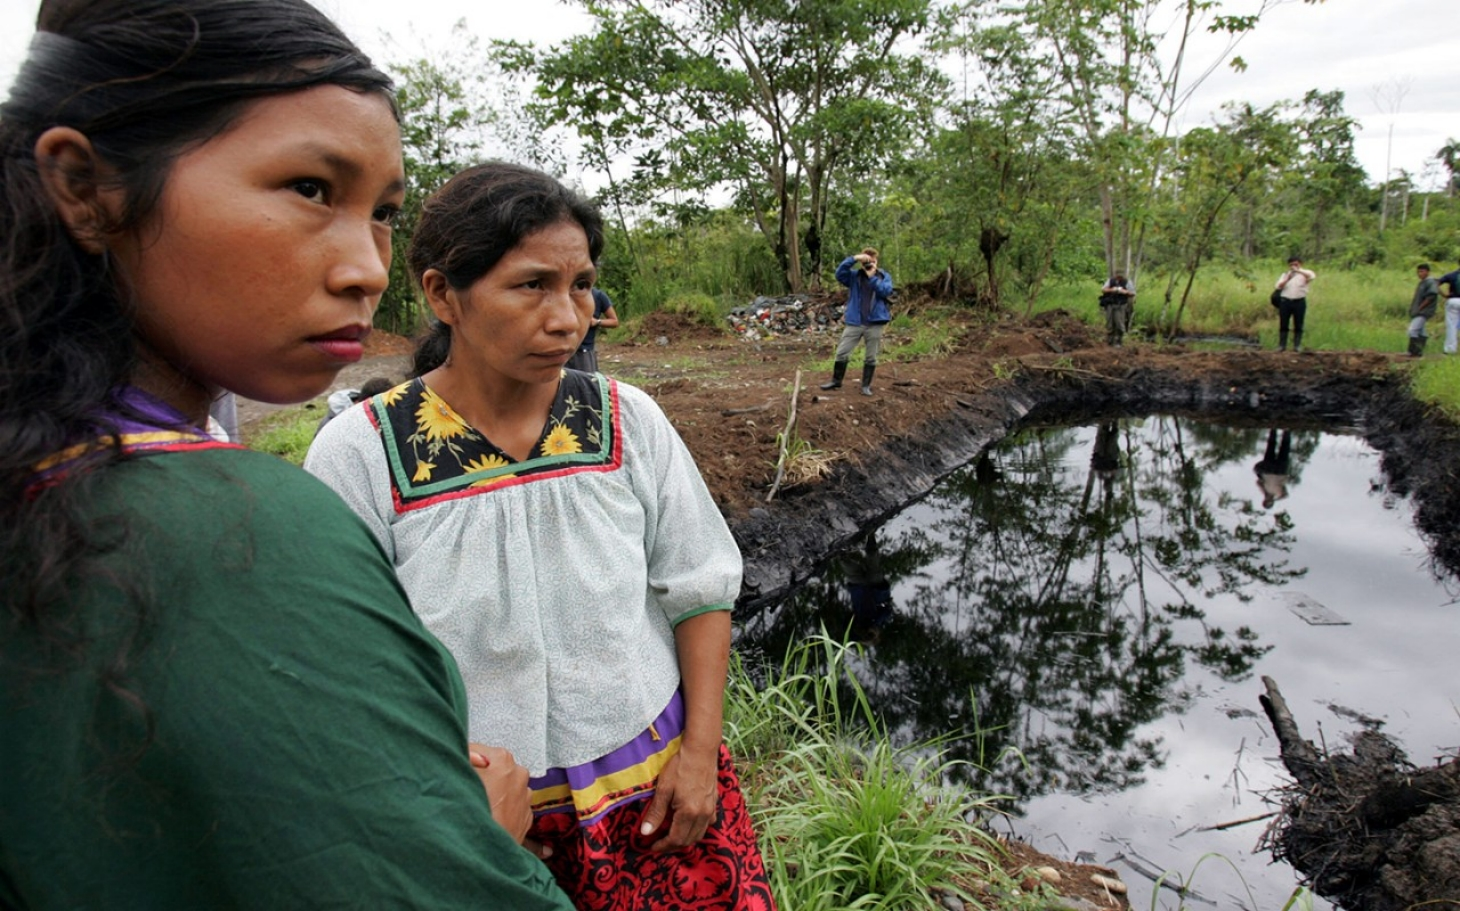 https://i2.wp.com/america.aljazeera.com/content/ajam/articles/2015/9/4/canada-ecuadorians-can-sue-chevron-in-ontario/jcr:content/headlineImage.adapt.1460.high.ecuador_chevron_oil_090415.1441391307985.jpg